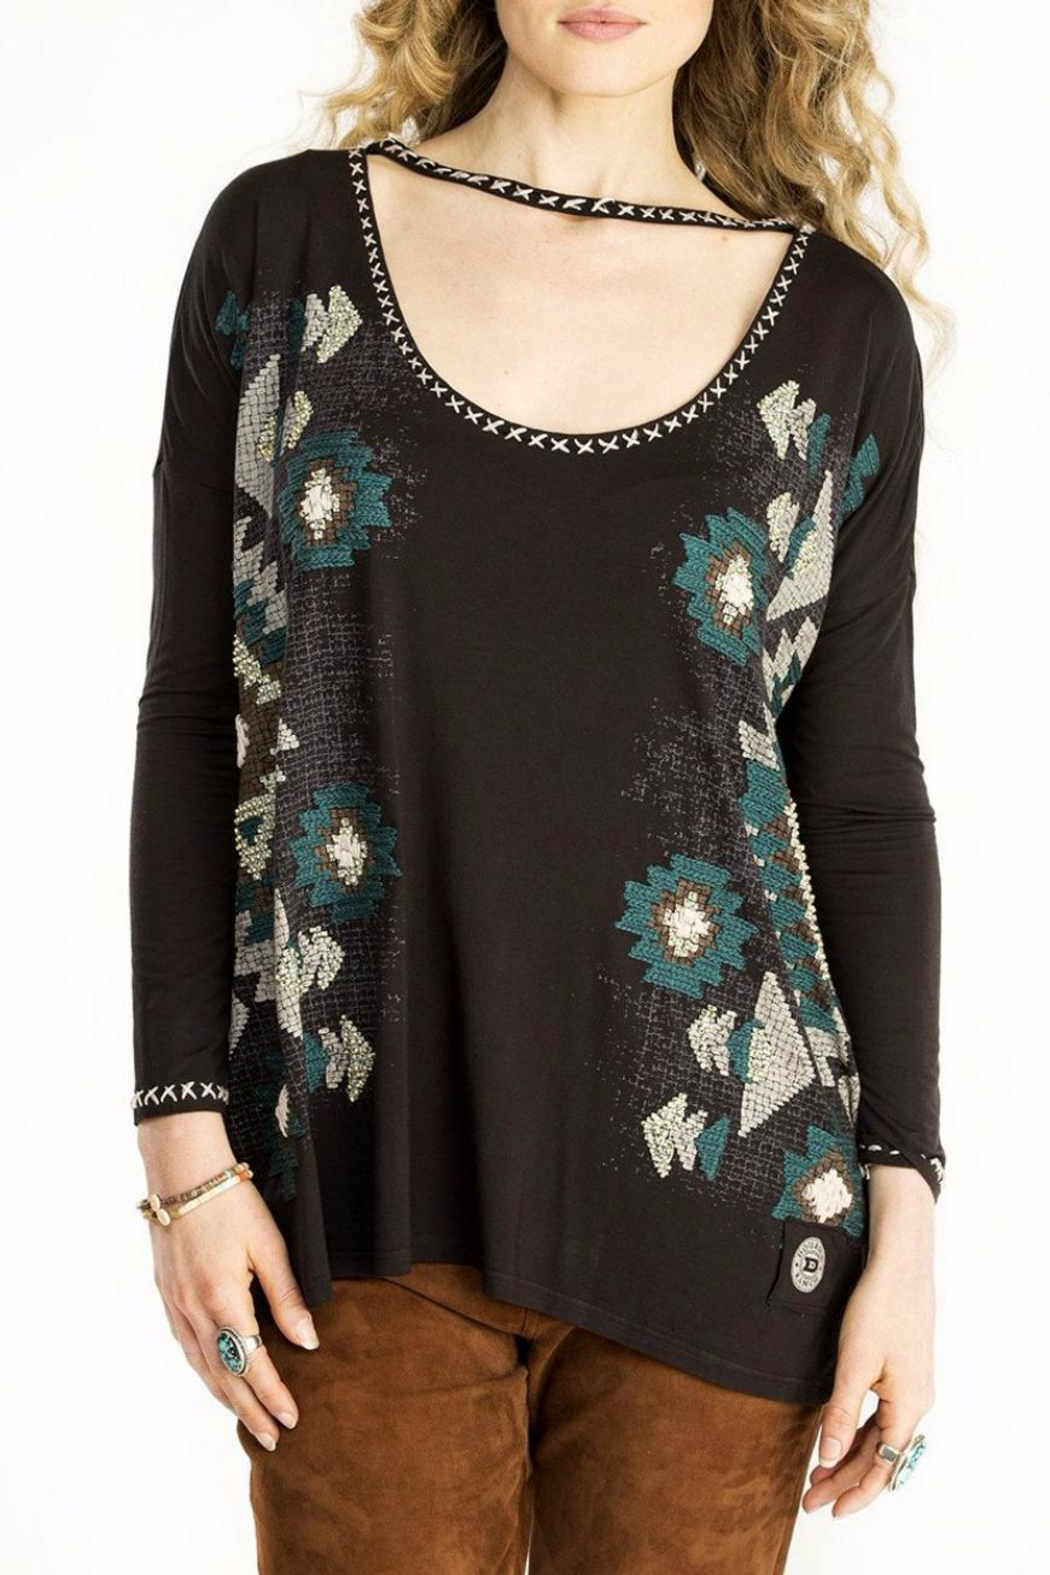 Double D Ranchwear Top With Choker - Main Image